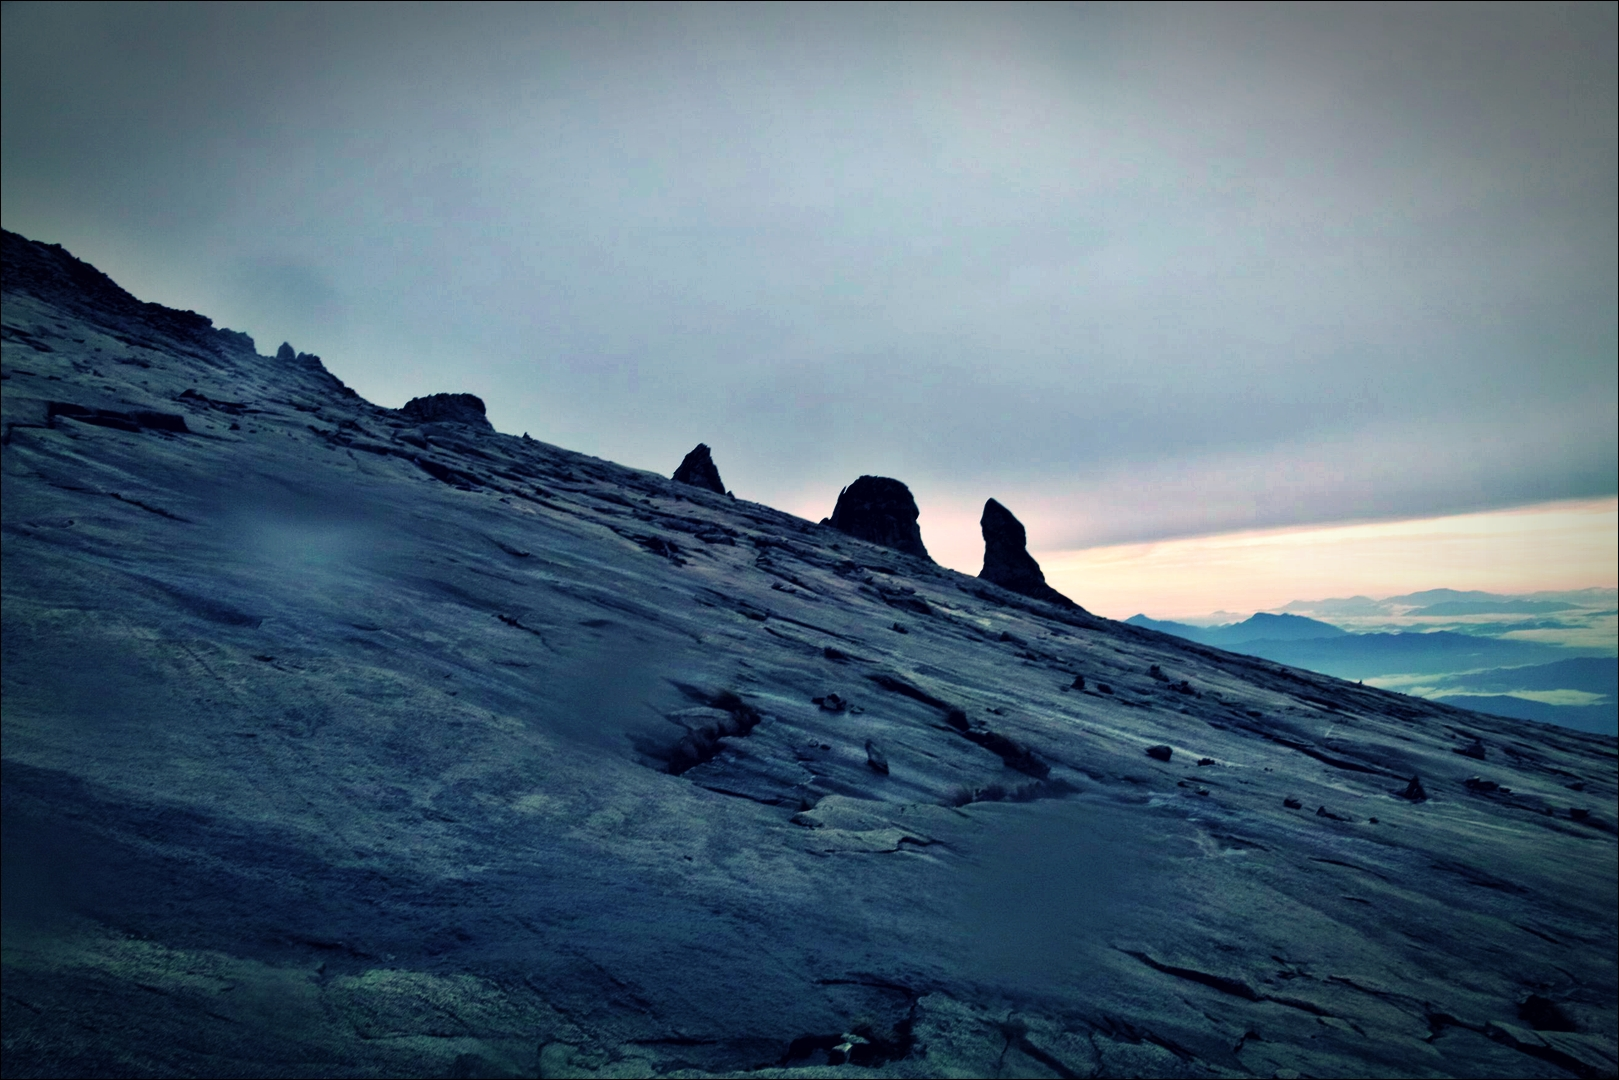 바위산-'키나발루 산 등정 Climbing mount Kinabalu Low's peak the summit'